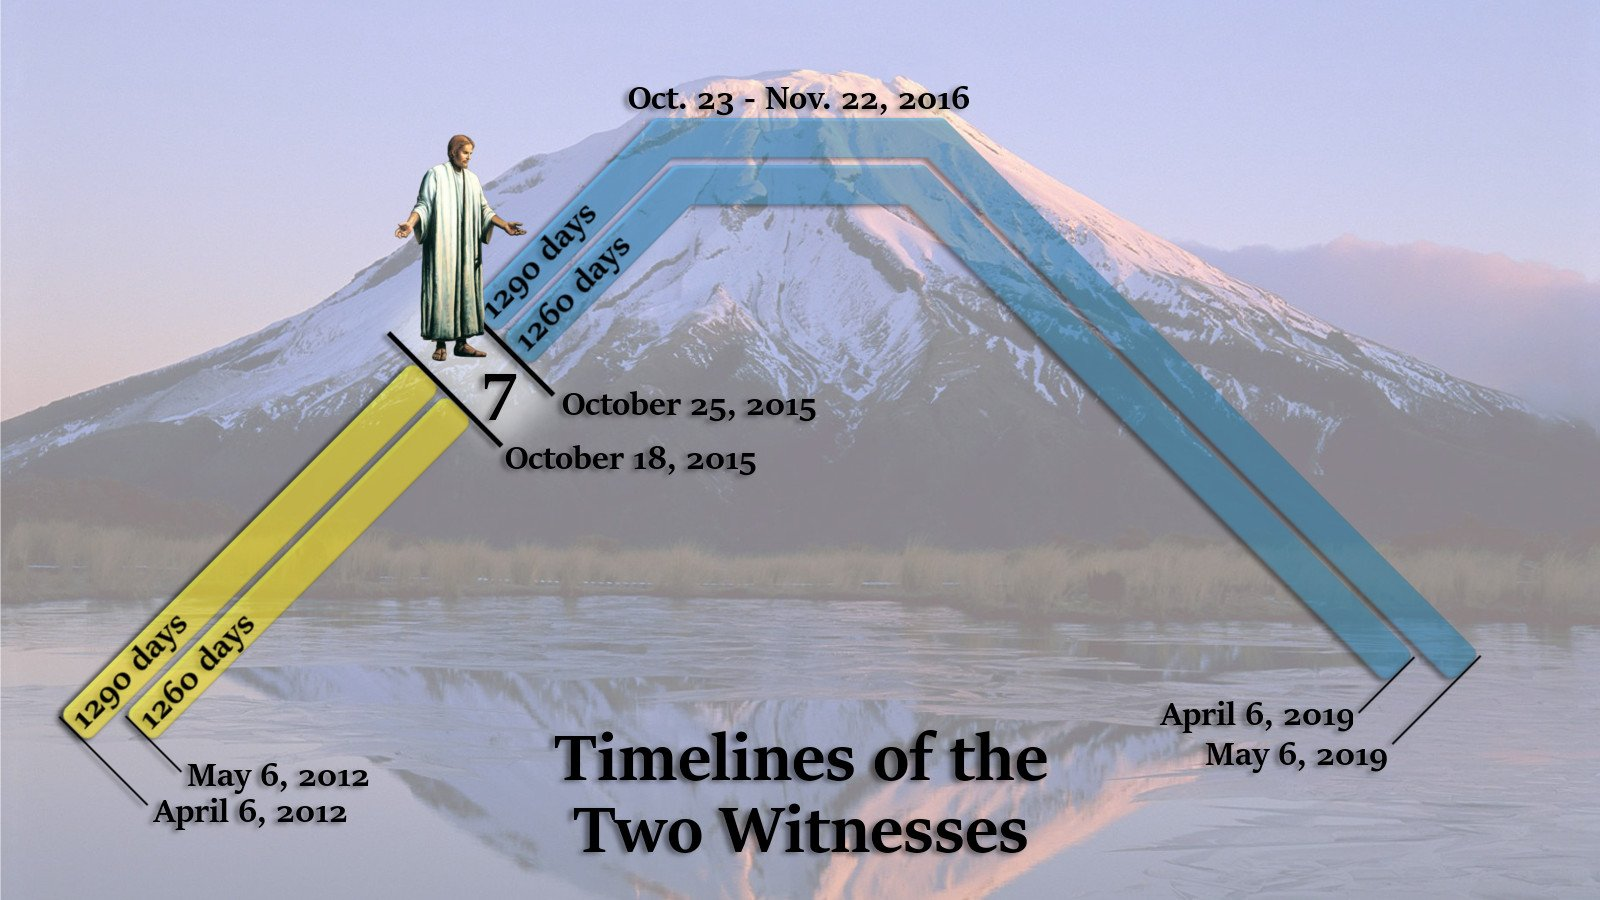 April 6, 2019 in the Timelines of the Two Witnesses